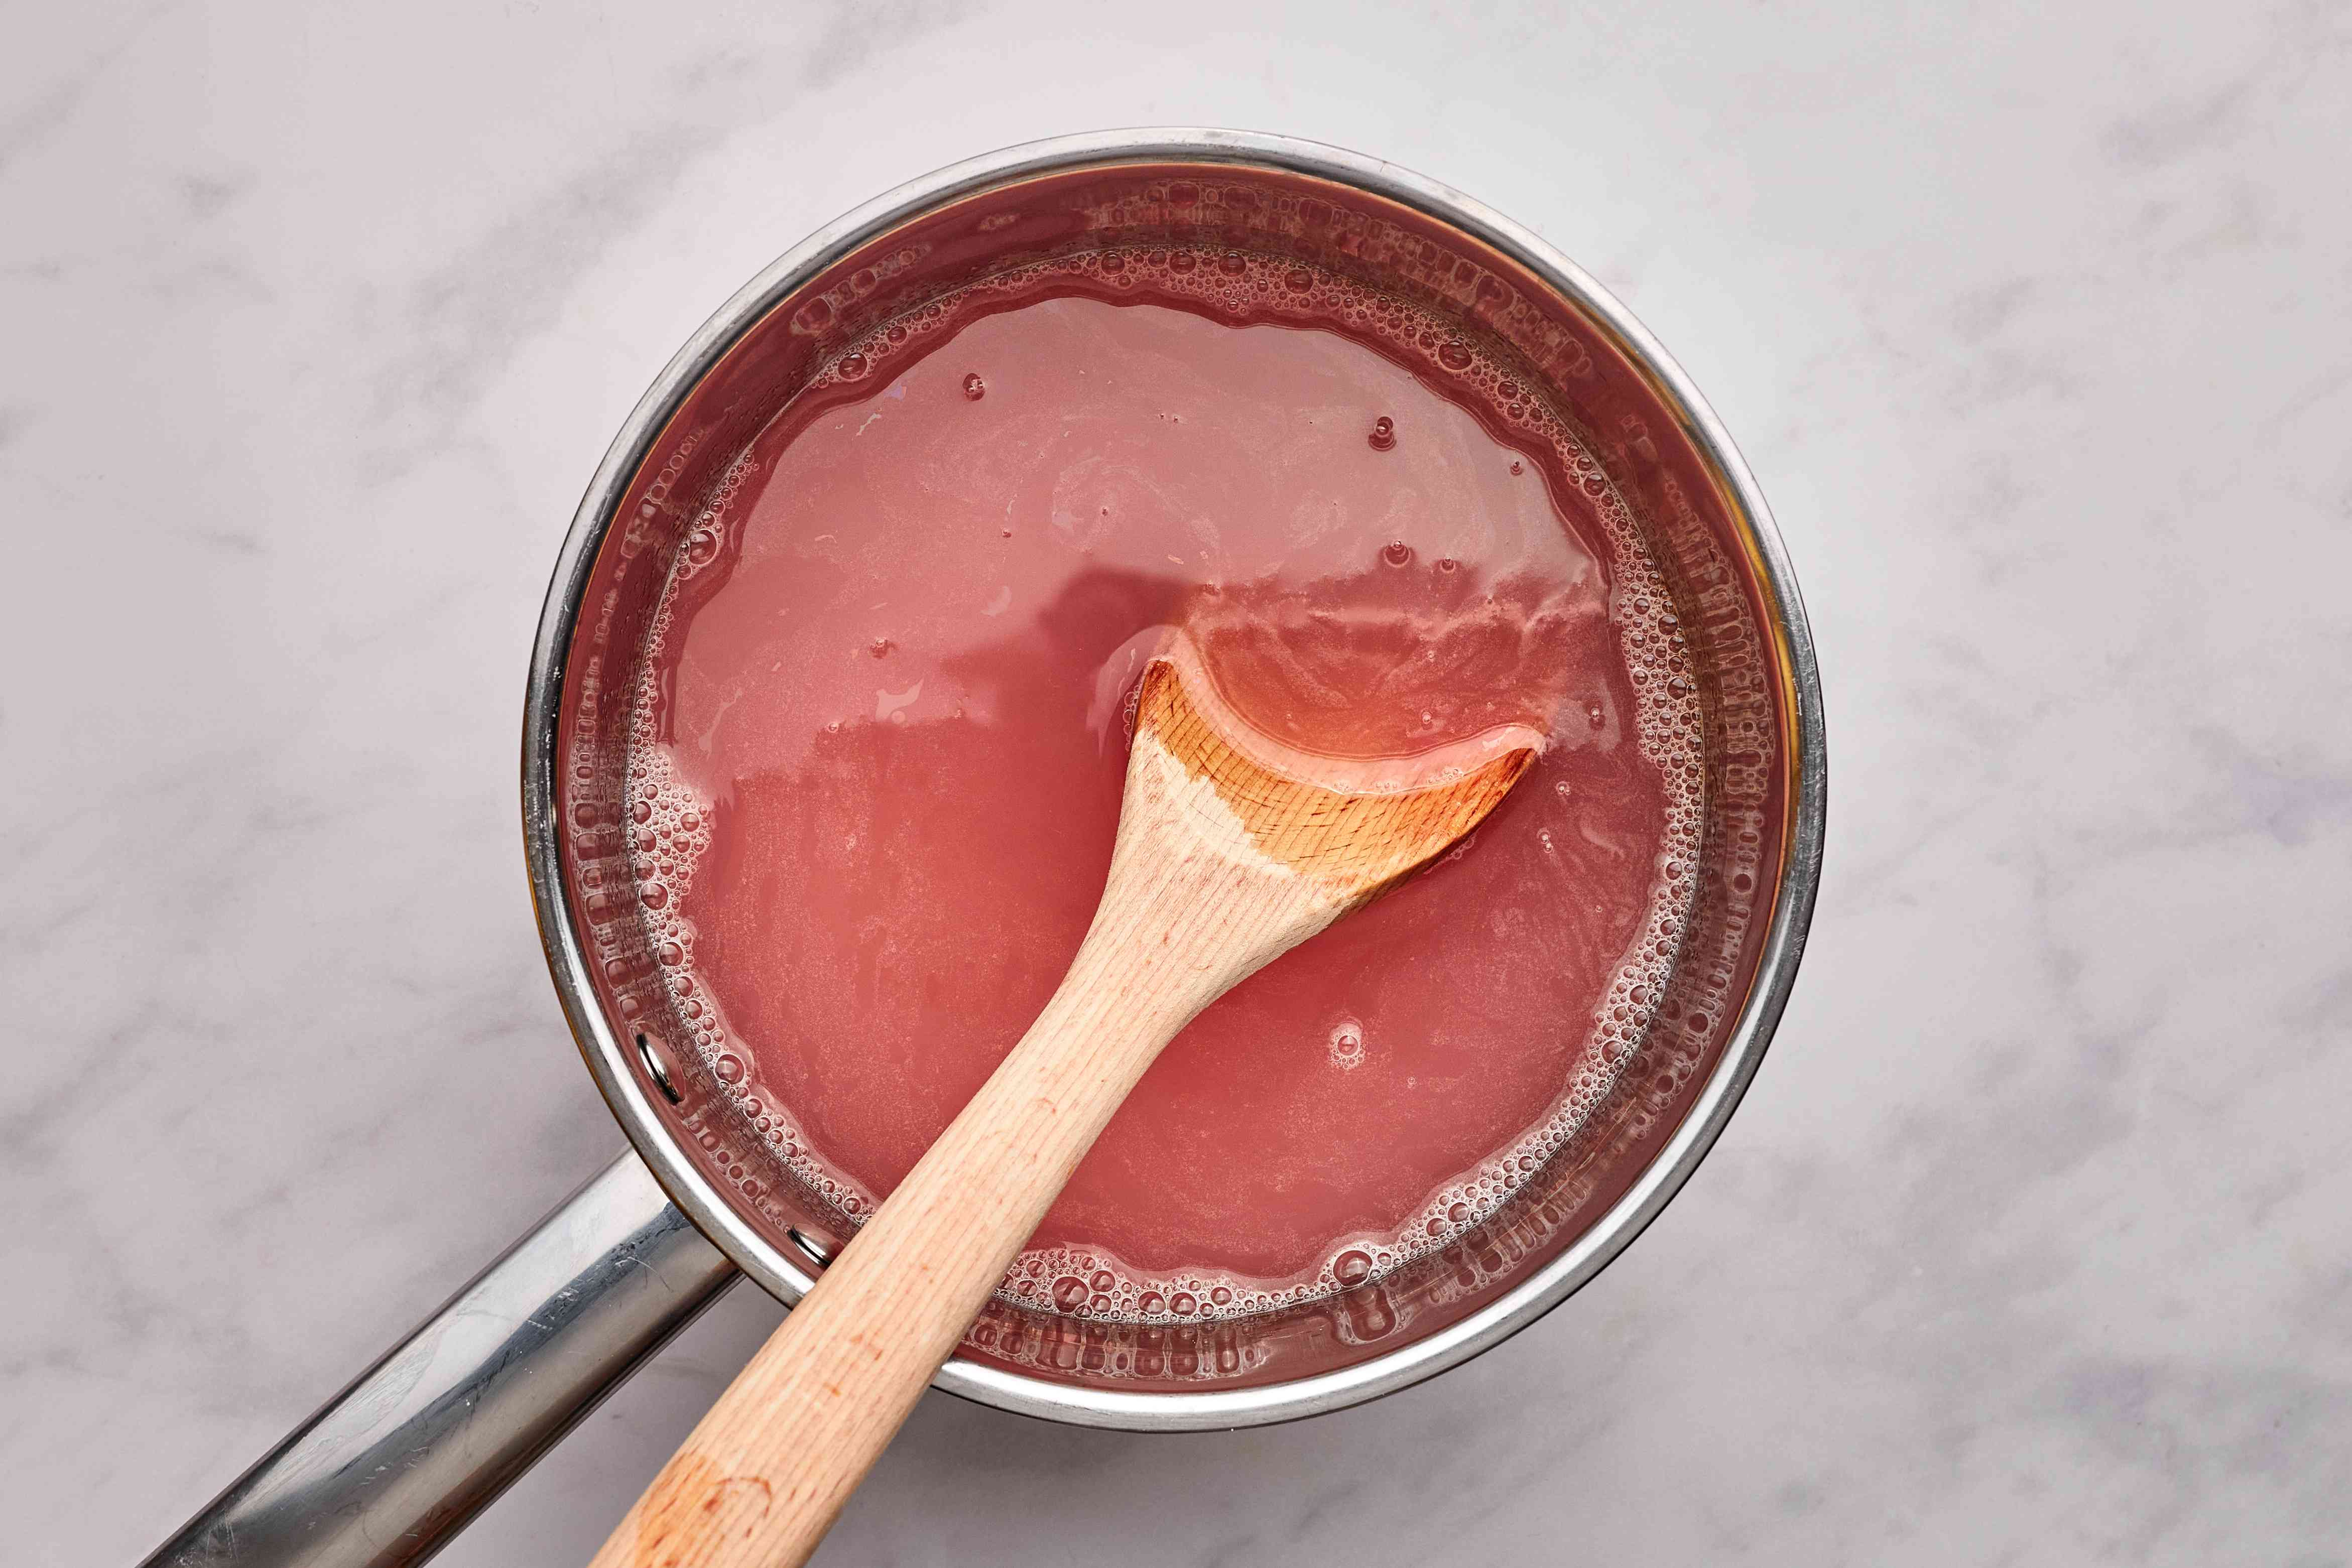 champagne added to rhubarb mixture